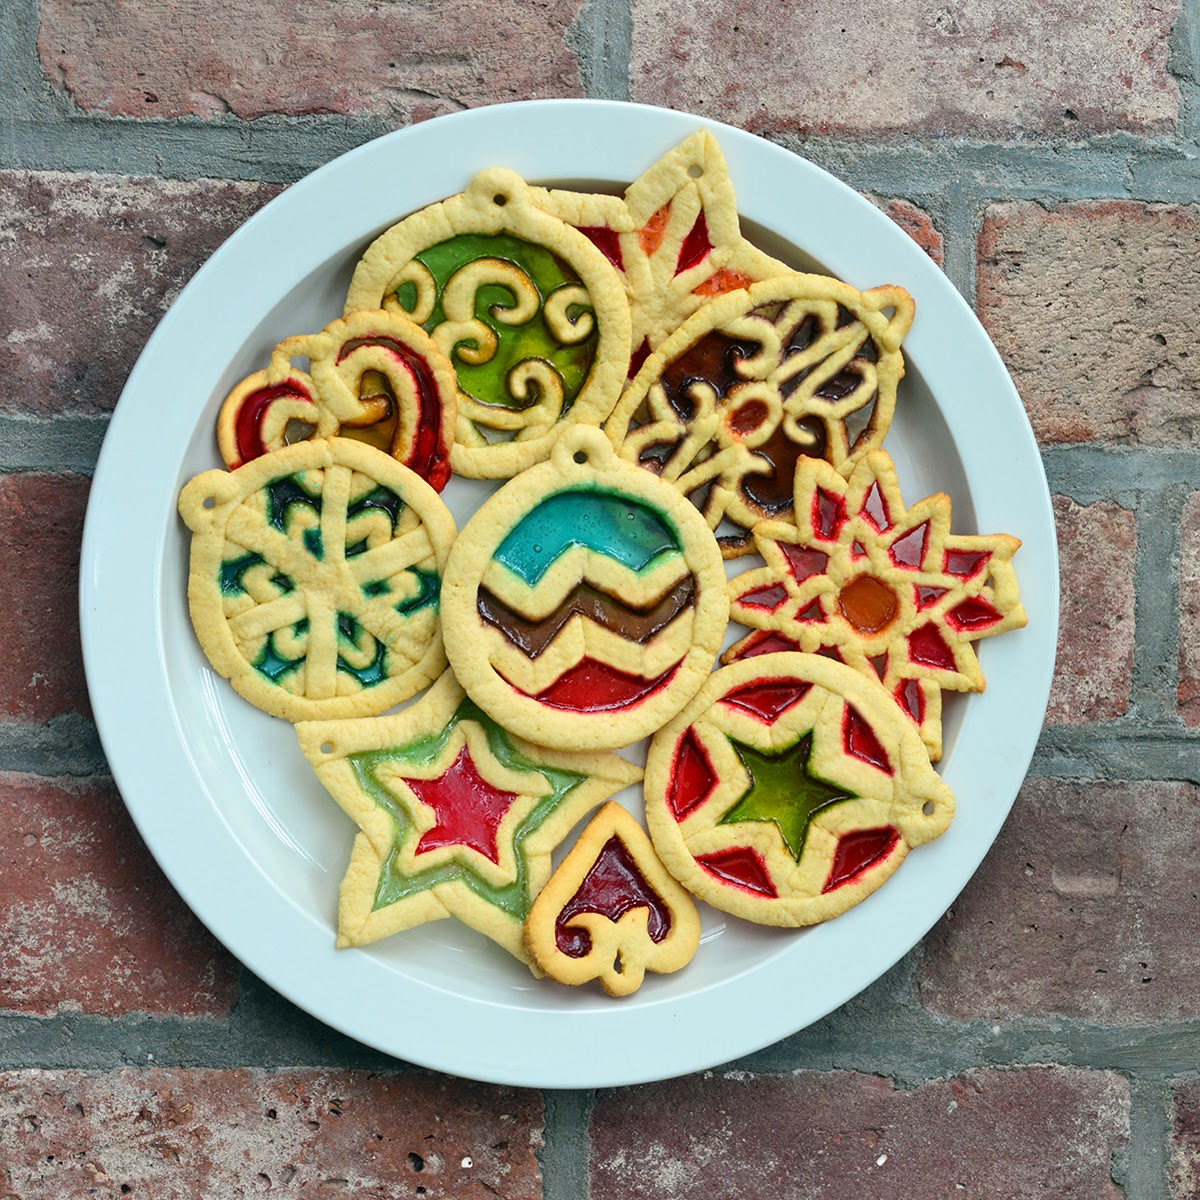 so i make stuff stained glass cookies